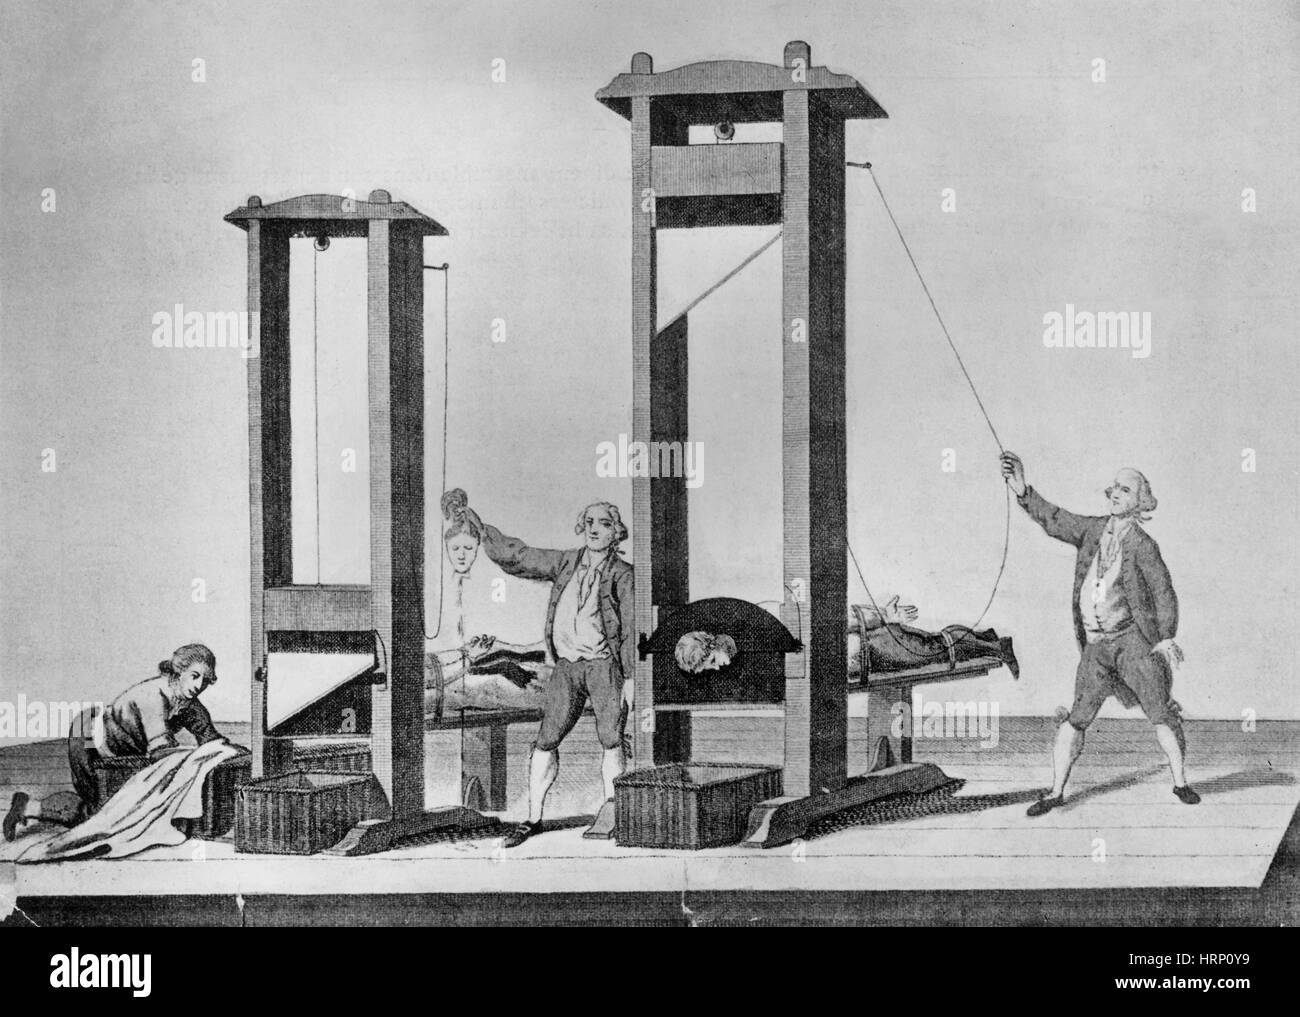 French Revolution, Guillotine, 18th Century - Stock Image